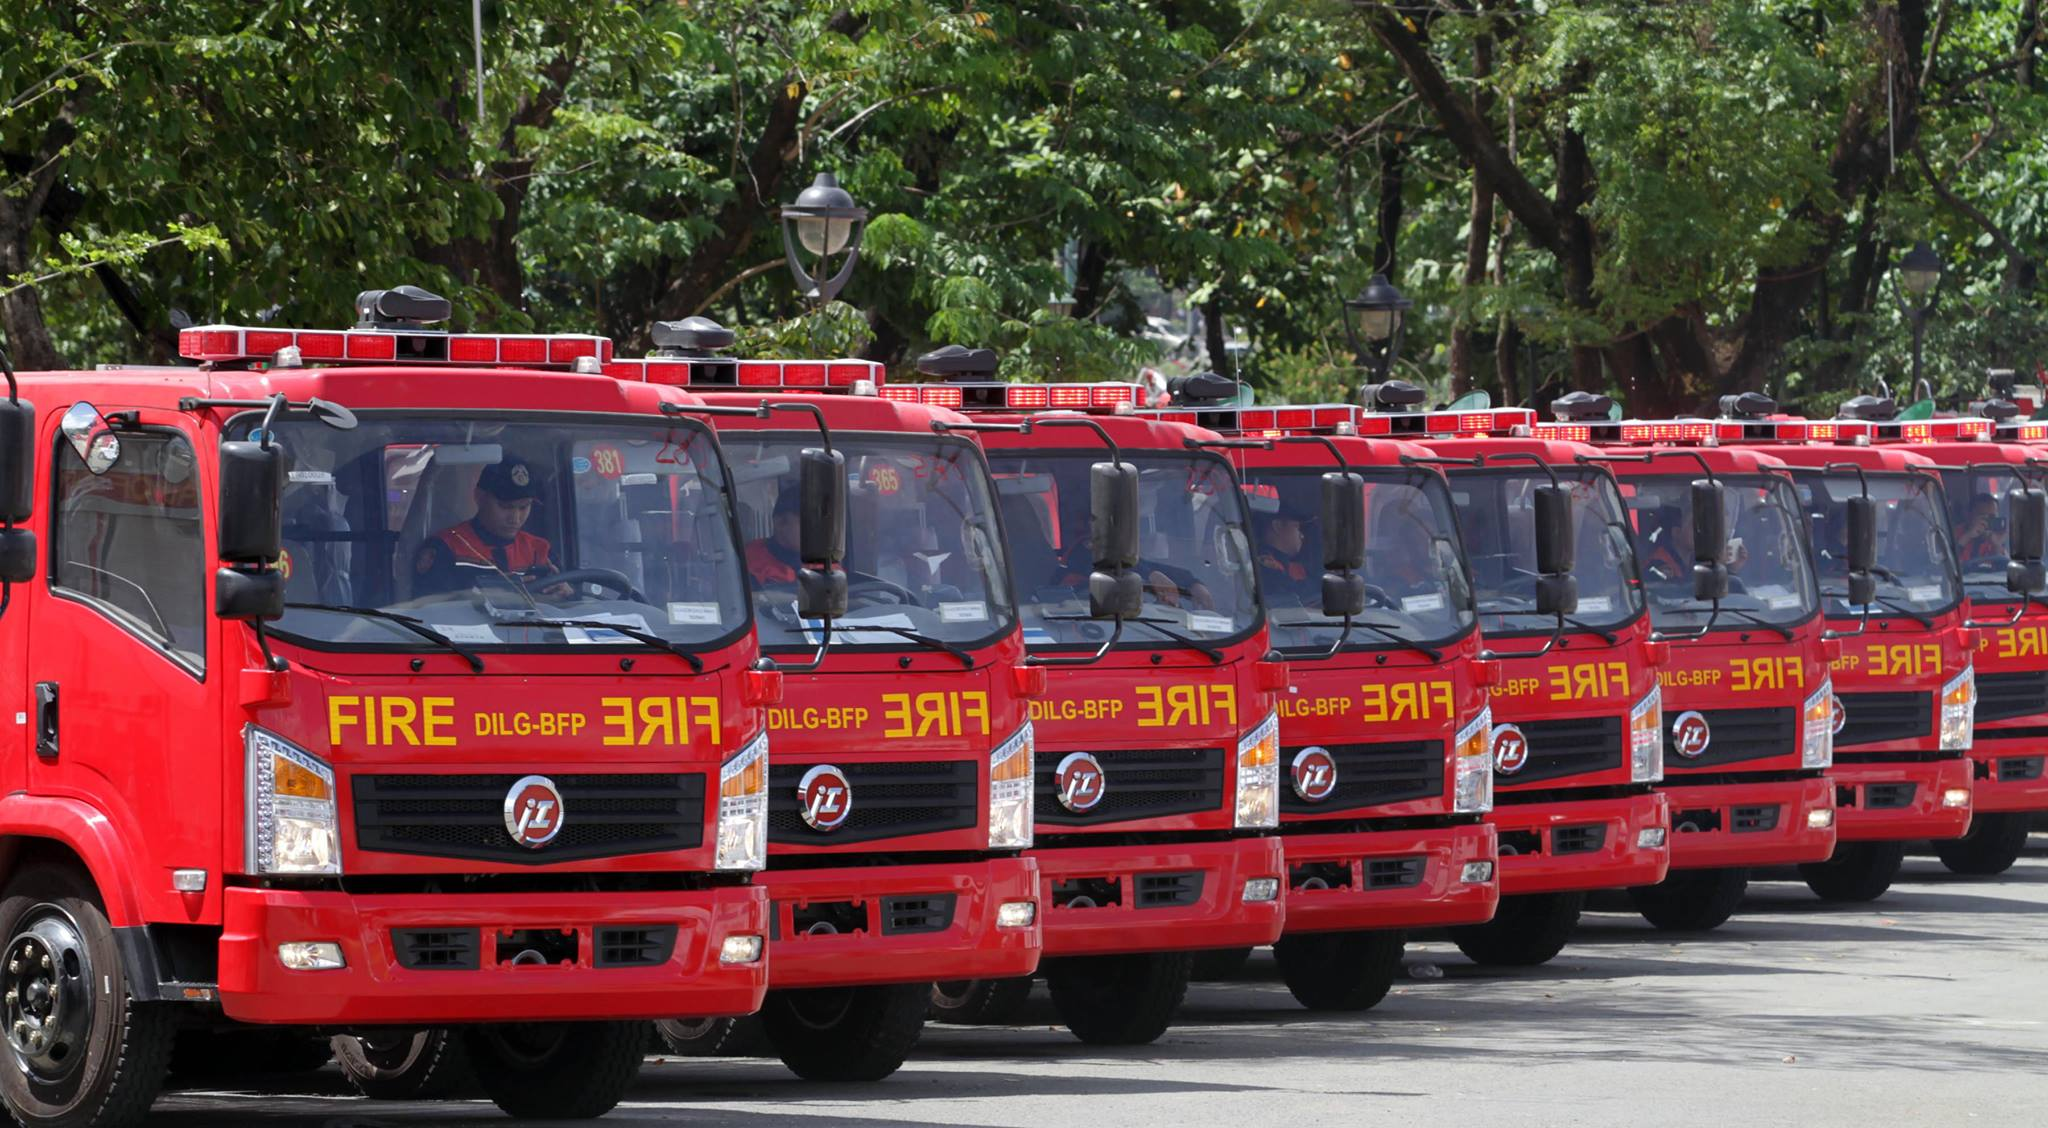 Eighteen fire trucks, 12 water tankers, and thousands of trained emergency responders nationwide—the Philippine Red Cross (PRC) is on full alert 24/7 to respond to fire incidents that are expected to come out this fire season. (Photo: Official Gazette of the Republic of the Philippines/Facebook)